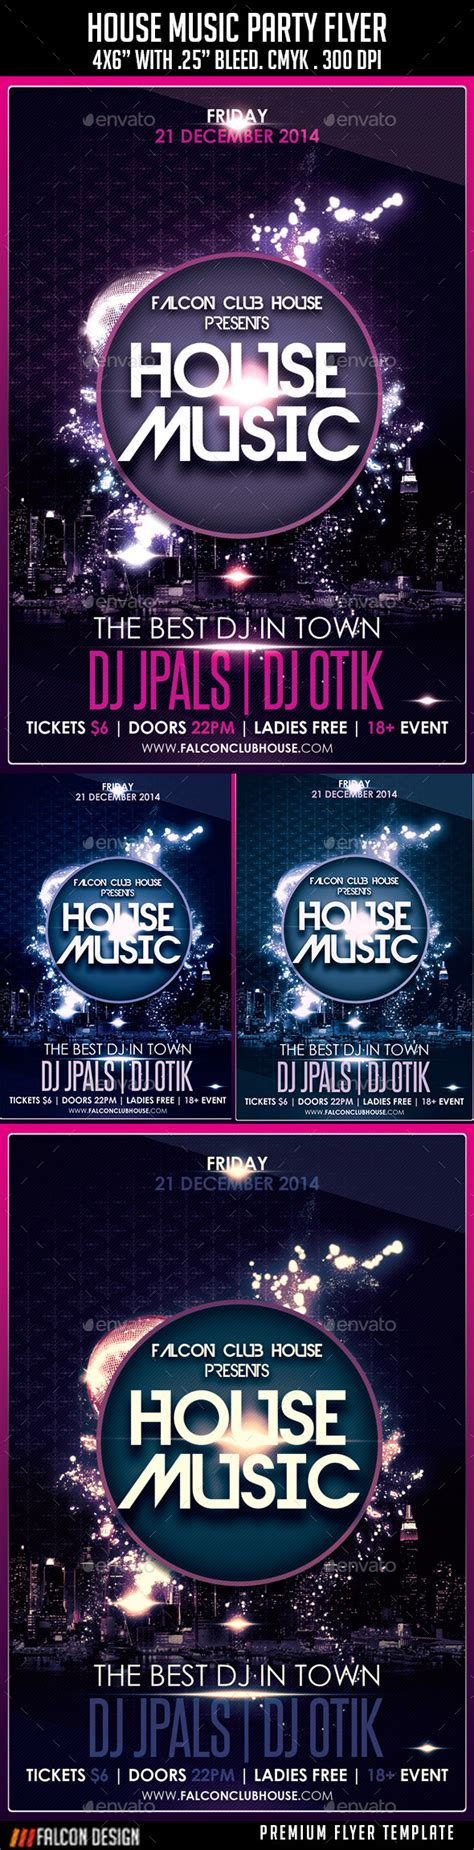 house party music house music party flyer by falconlabdesigns graphicriver